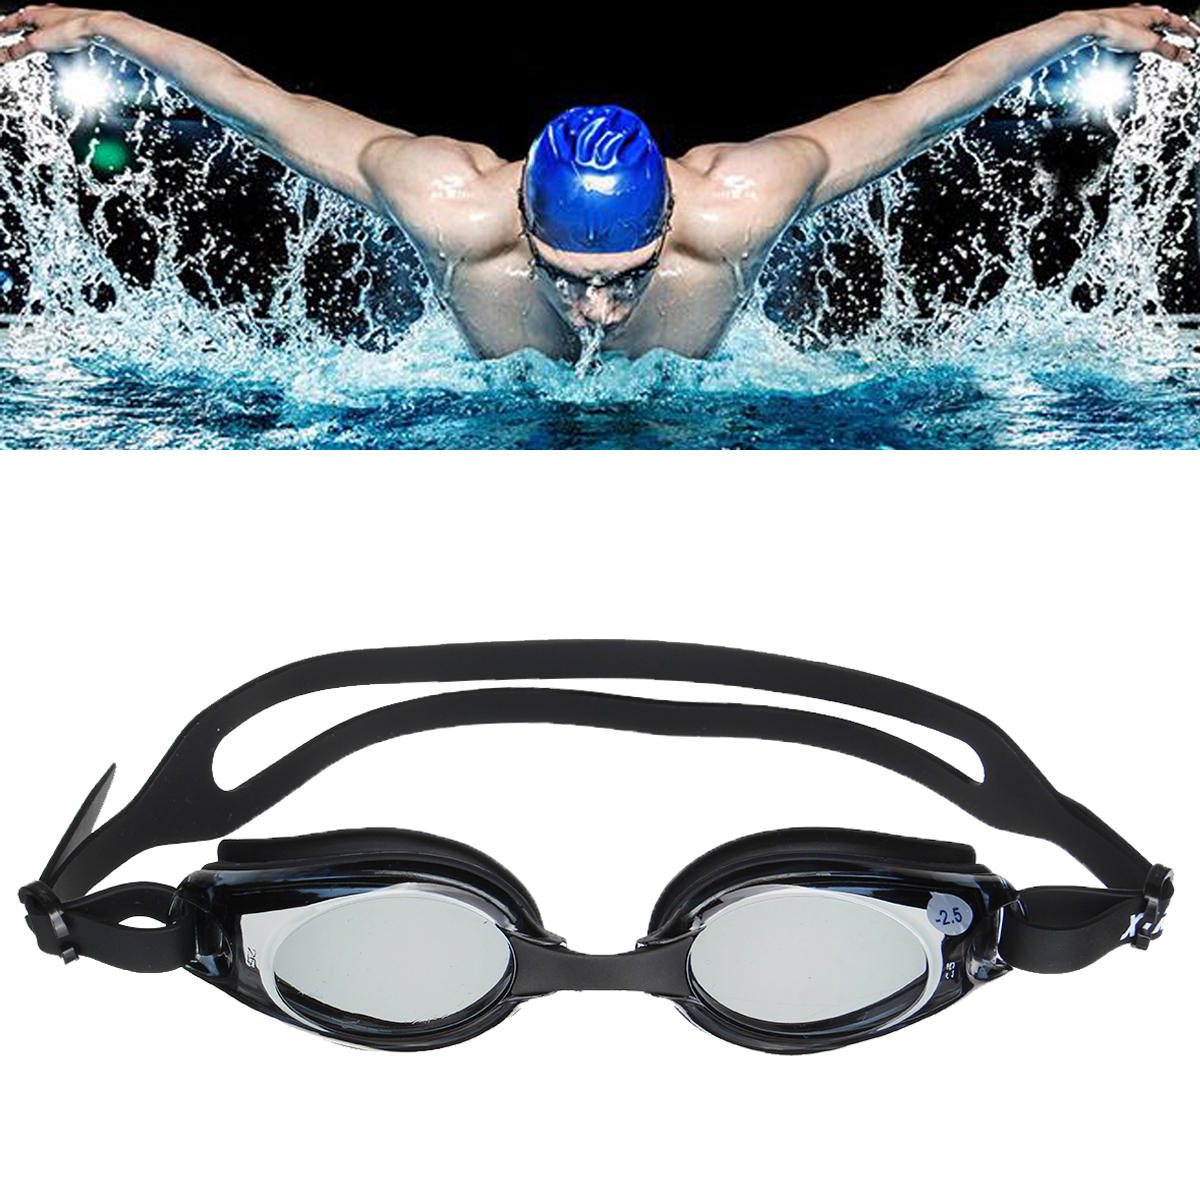 c2918492eb0f Anti-fog Prescription Swimming Goggles UV Proof Nearsighted Tinted Glasses  Myopic Lens Water Sports COD